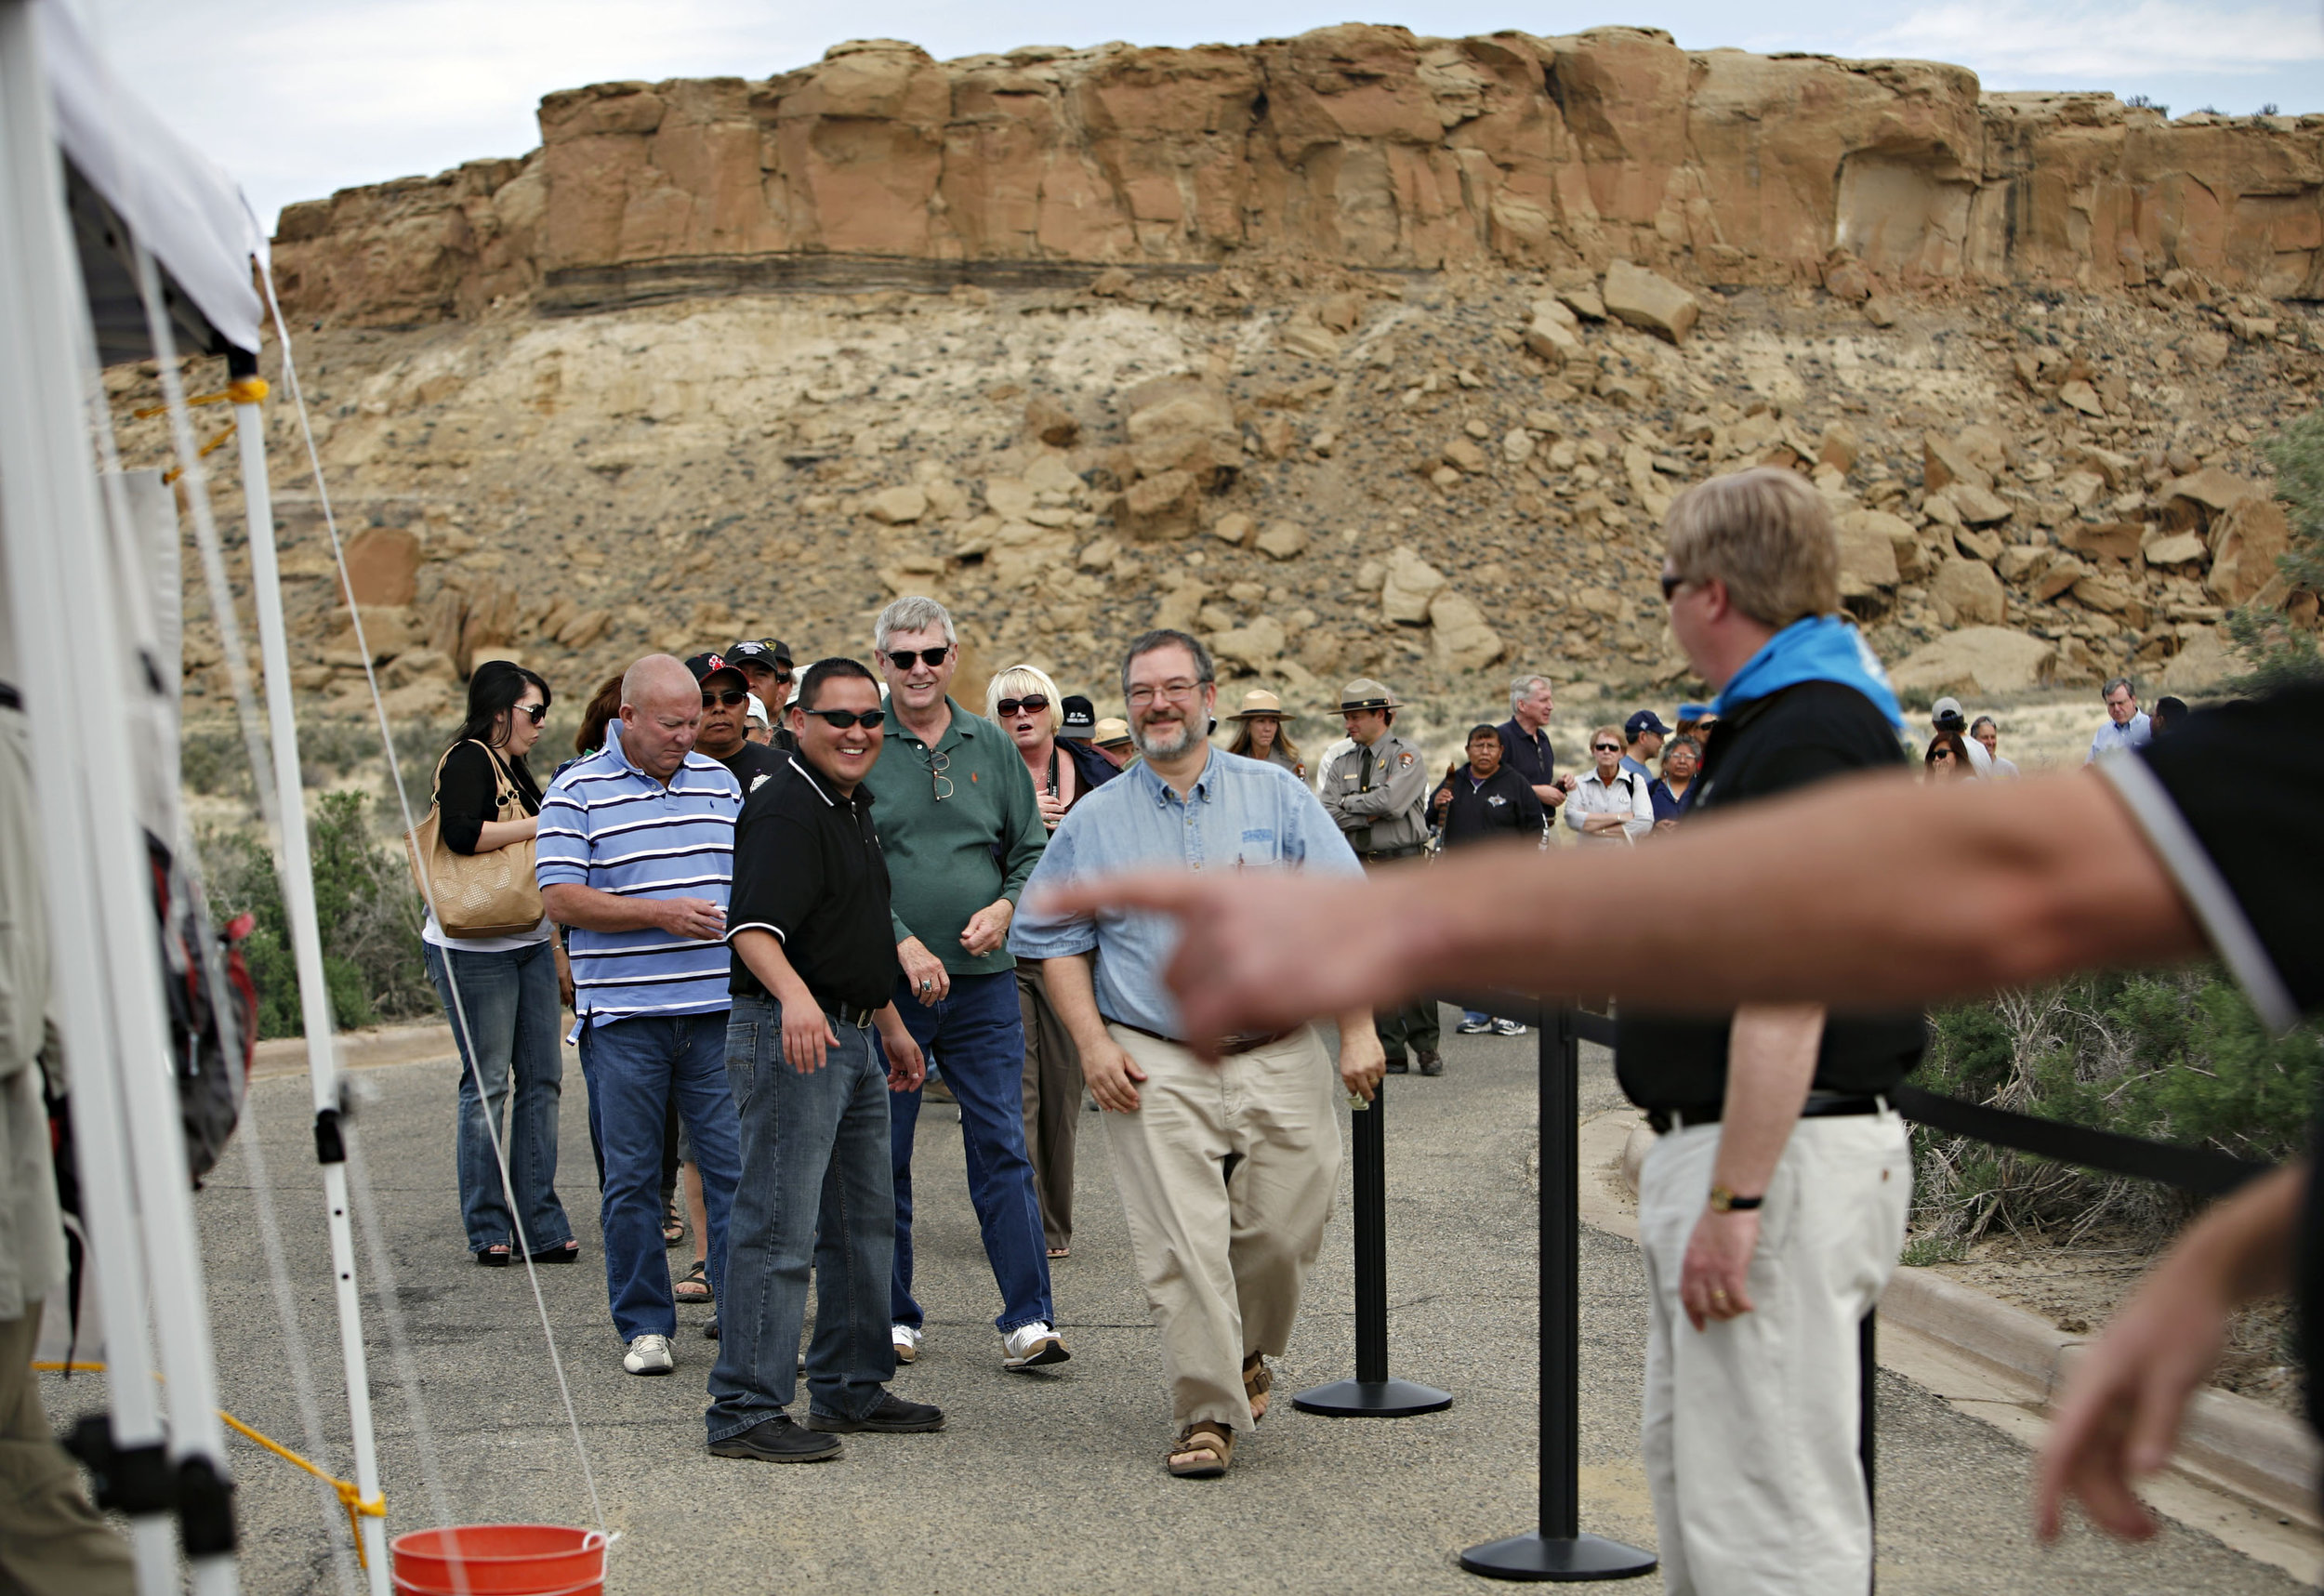 People line up to exchange their money for the new Chaco Canyon quarters during the quarter launch at Chaco Canyon, Thursday, April 26, 2012. (Morgan Petroski/Albuquerque Journal)